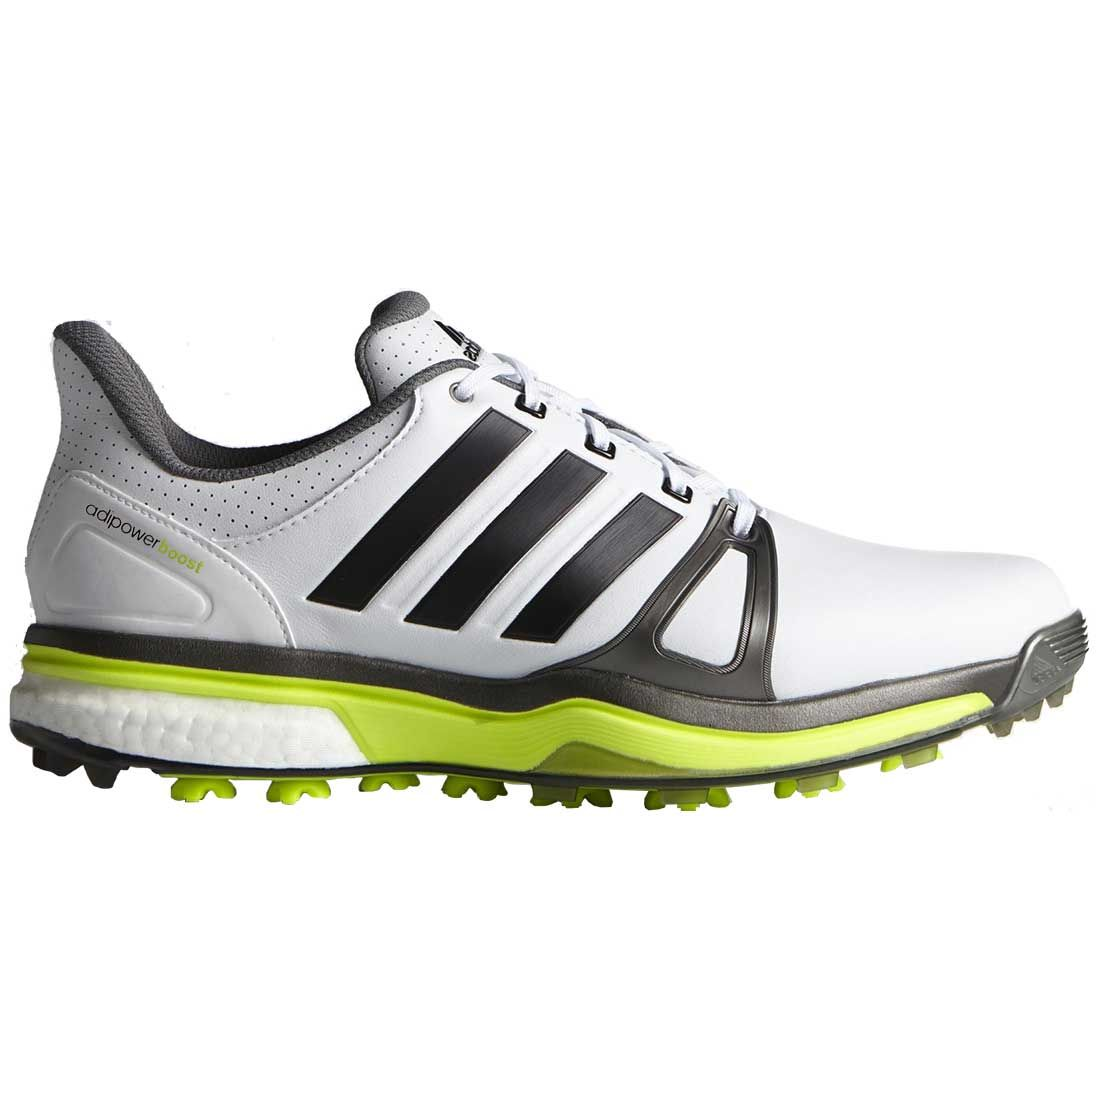 Pulido equilibrar es bonito  Buy Adidas AdiPower Boost 2 Golf Shoes White/Silver/Yellow | Golf Discount